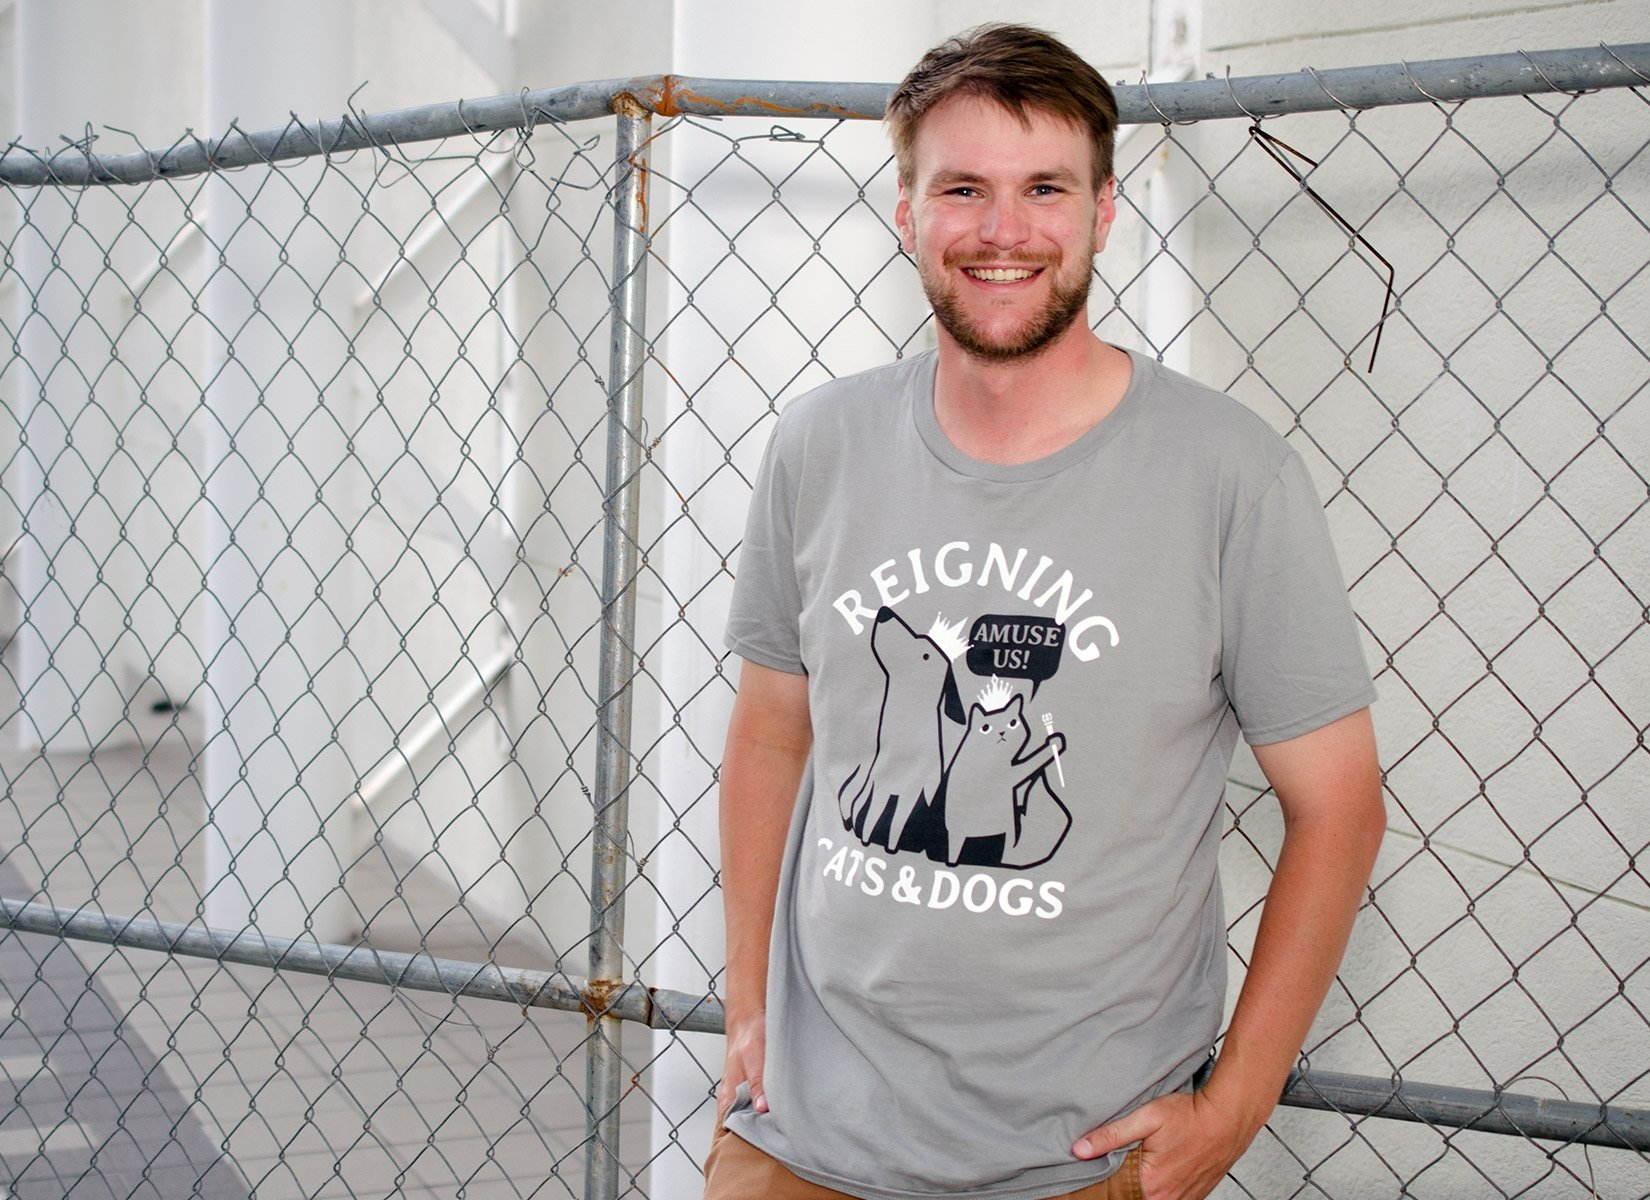 Reigning Cats And Dogs on Mens T-Shirt